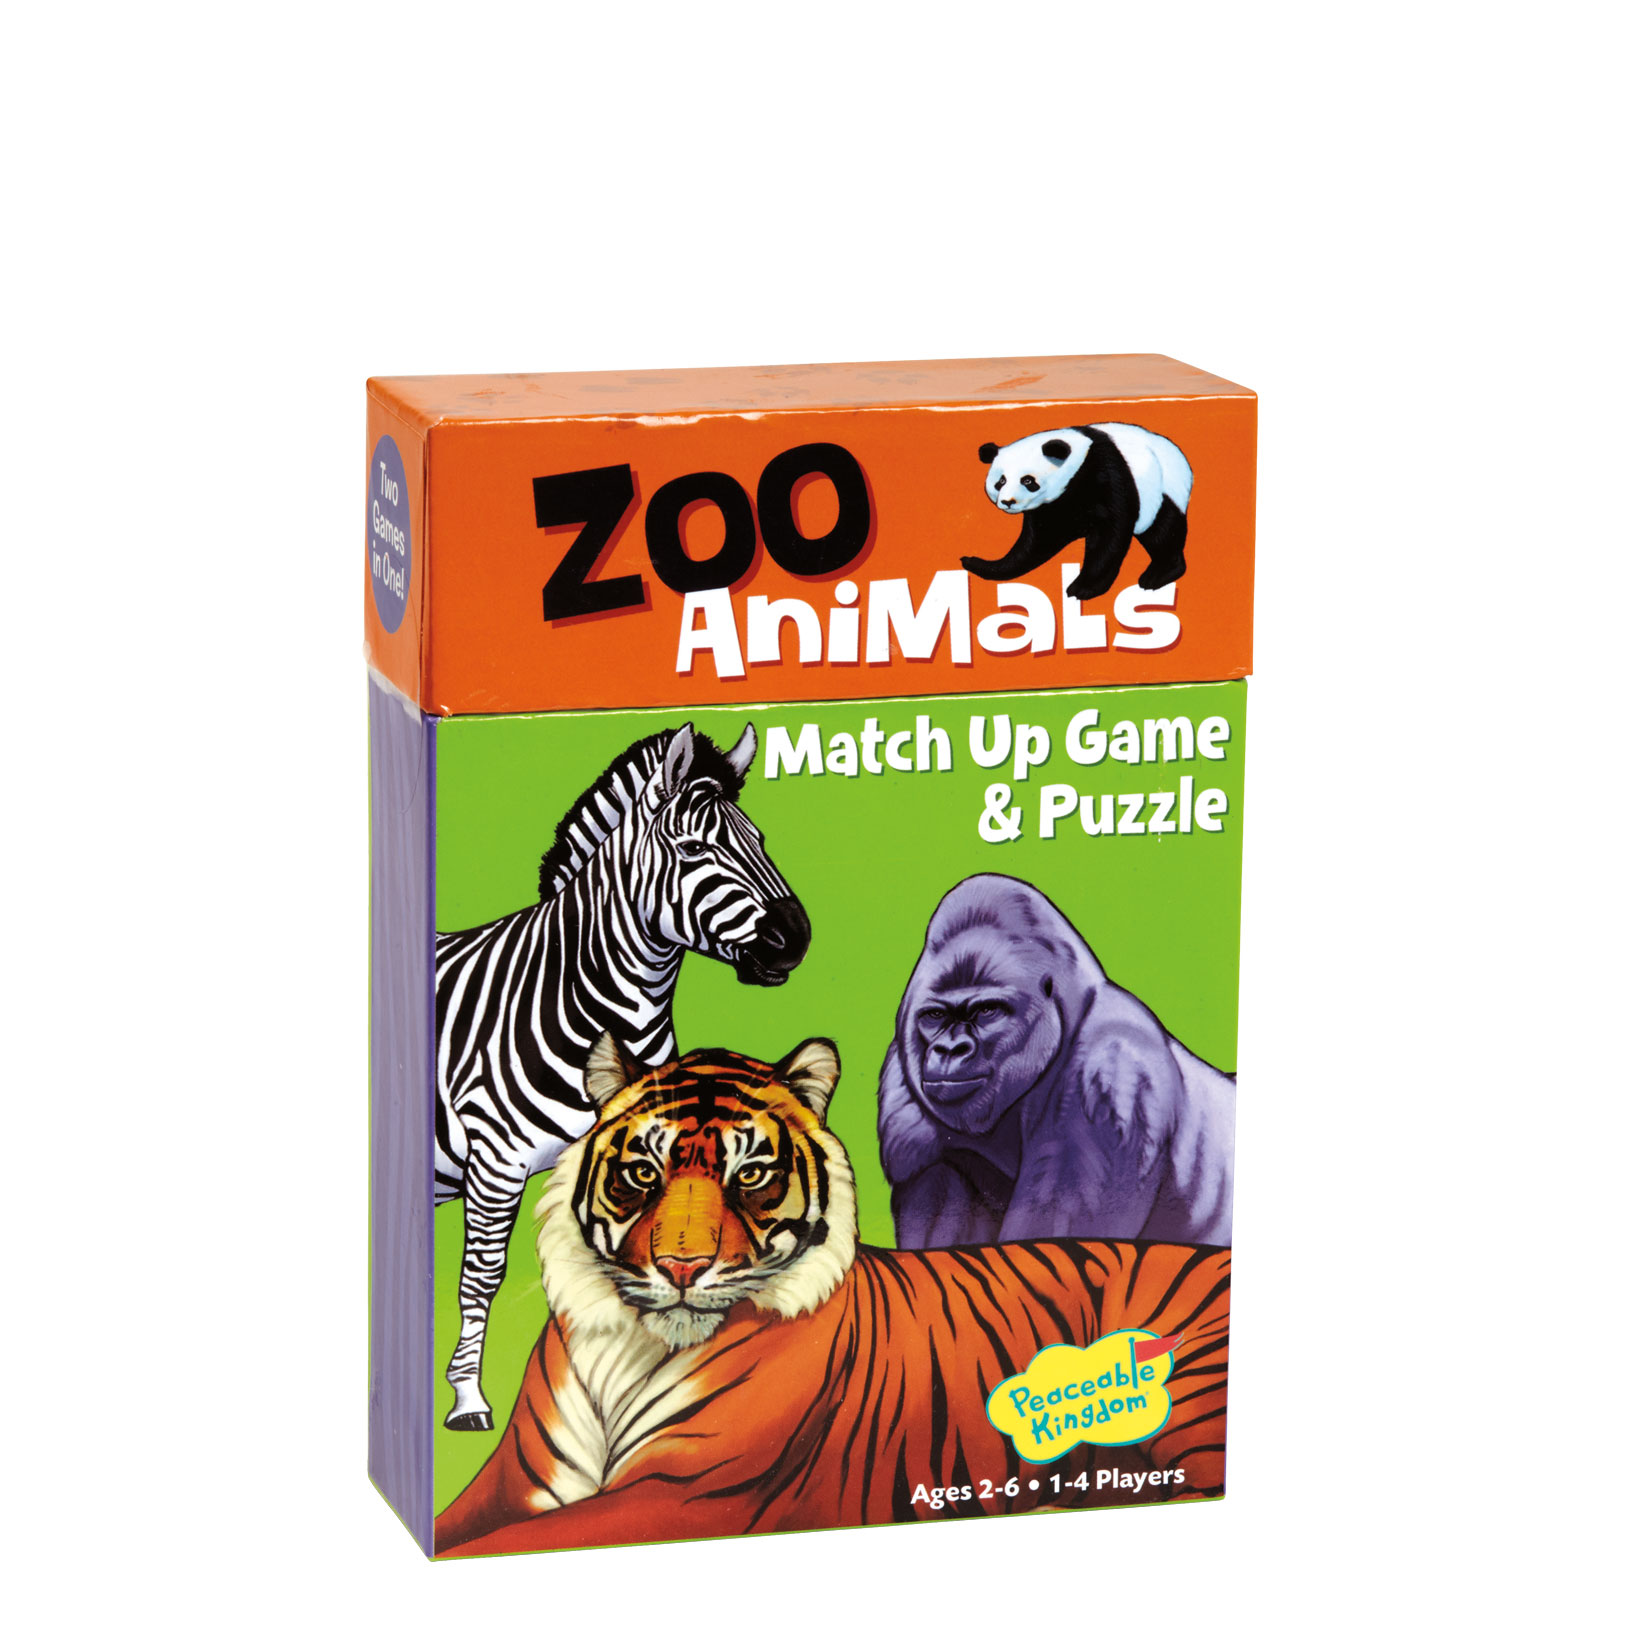 Match Up Game & Puzzle, Learn to count Zoo Animals by Peaceable Kingdom